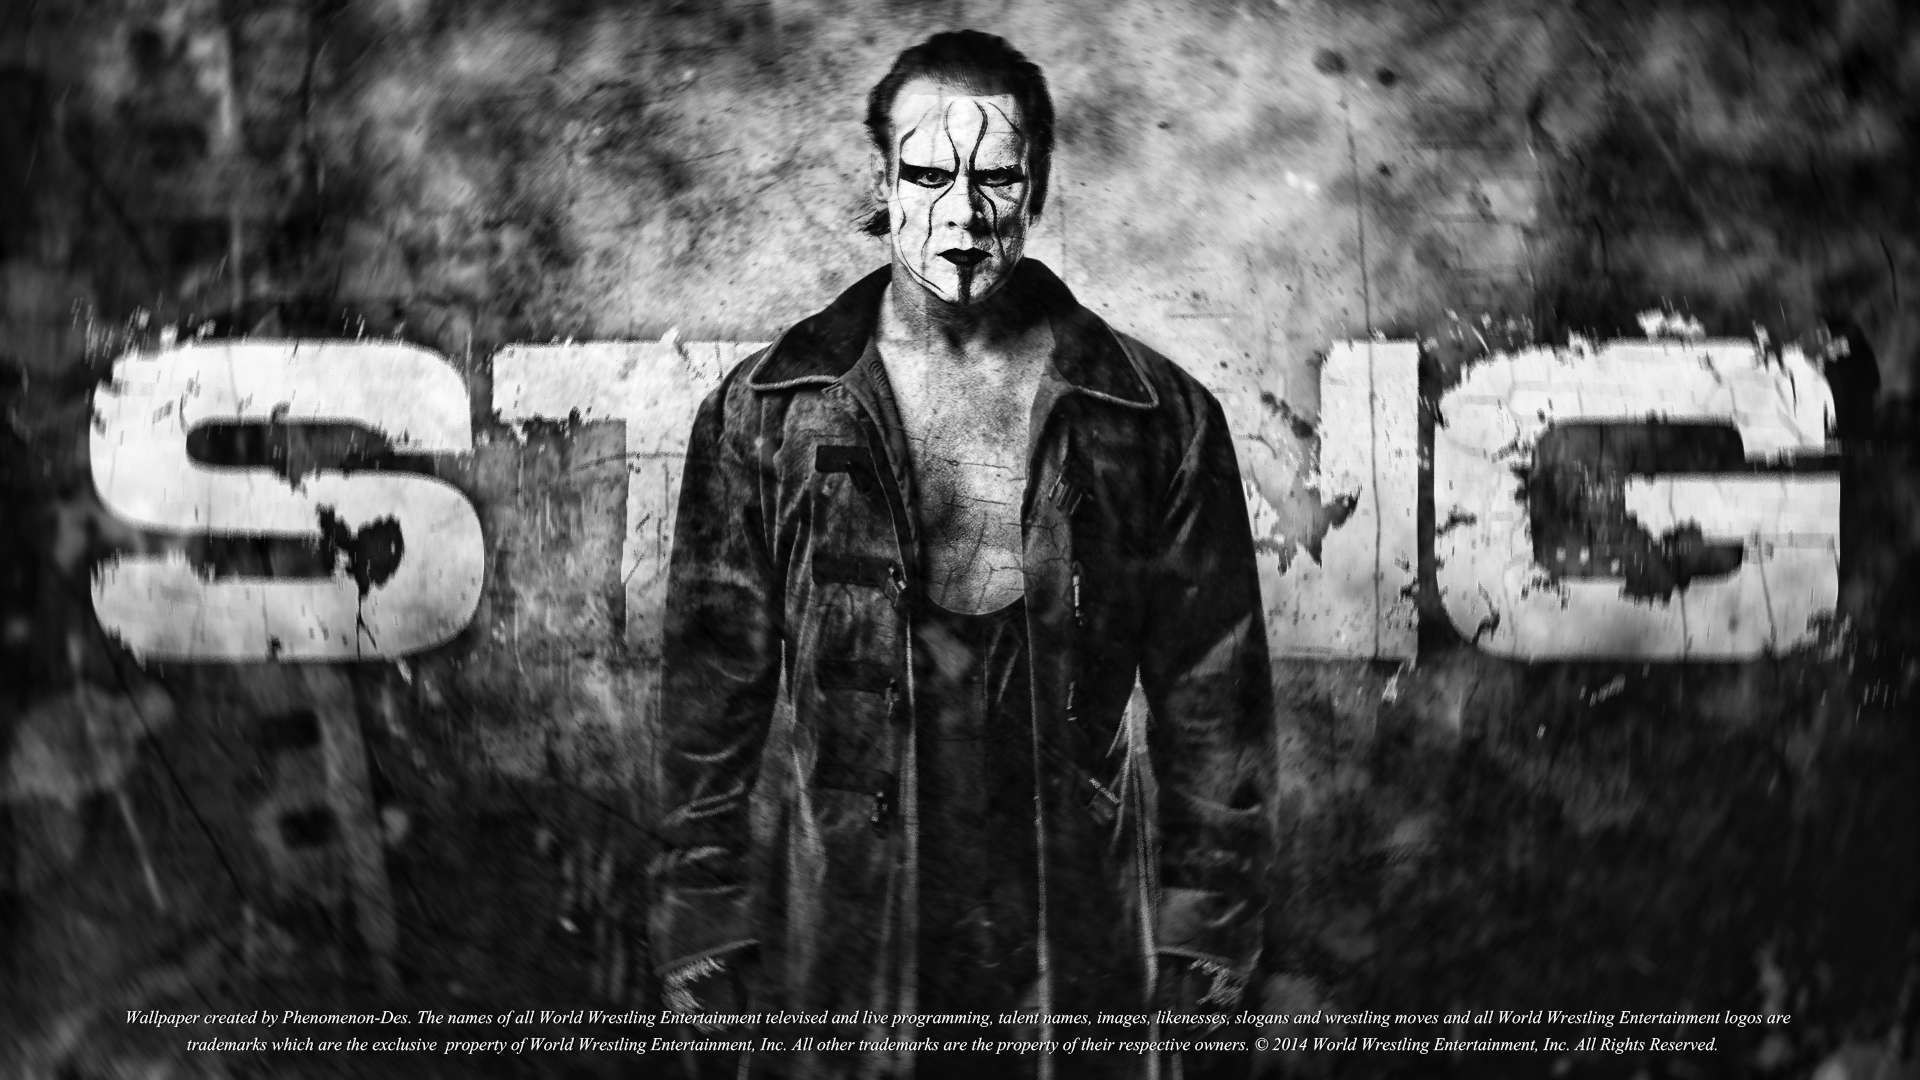 1920x1080 WWE Sting Wallpaper HD - WallpaperSafari